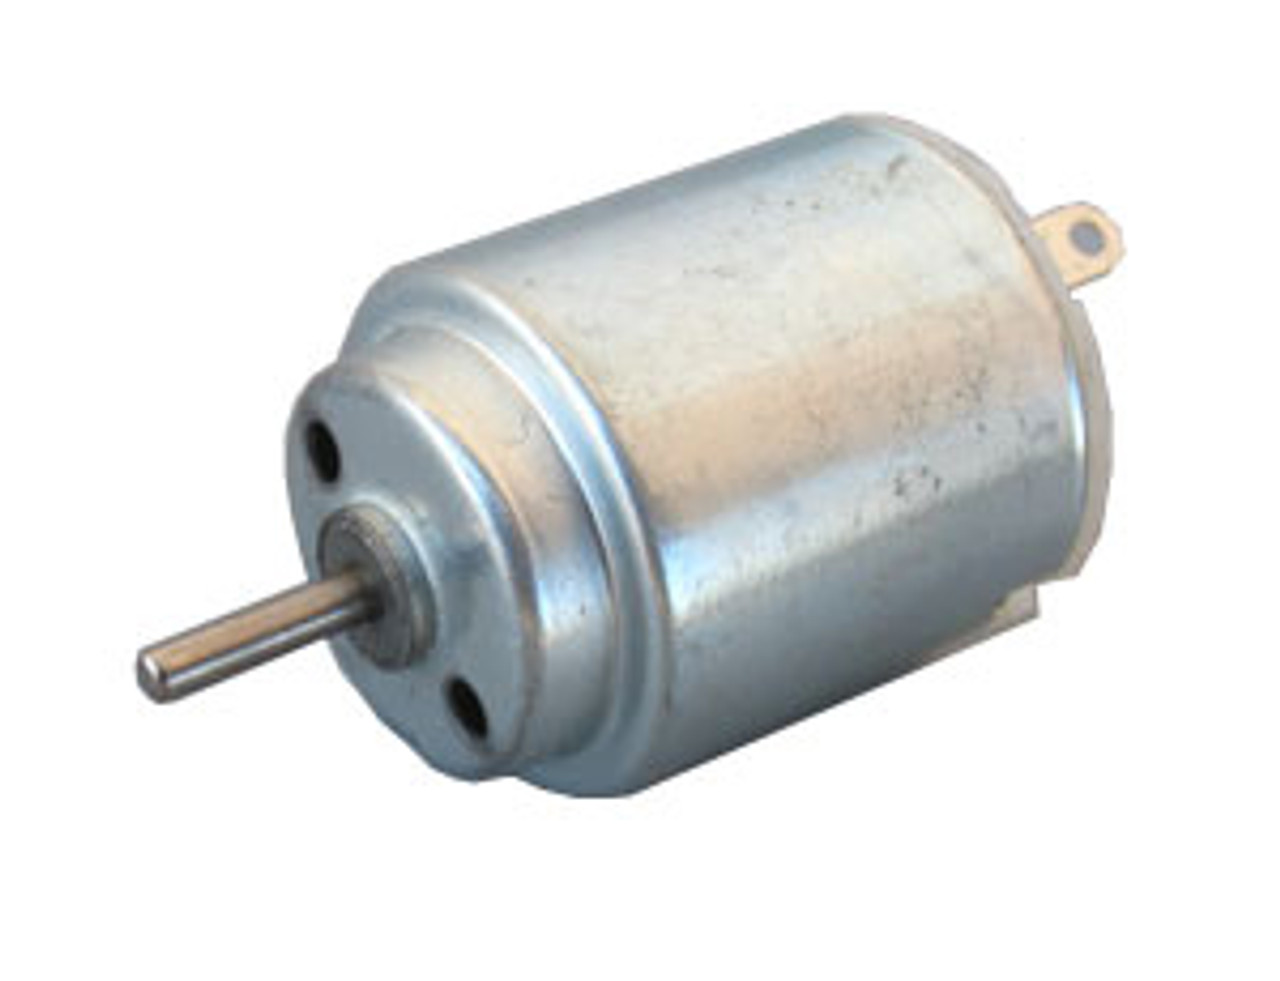 Toy motor, hobby motor, DC motor, miniature motor, small motor, low voltage motor. Round